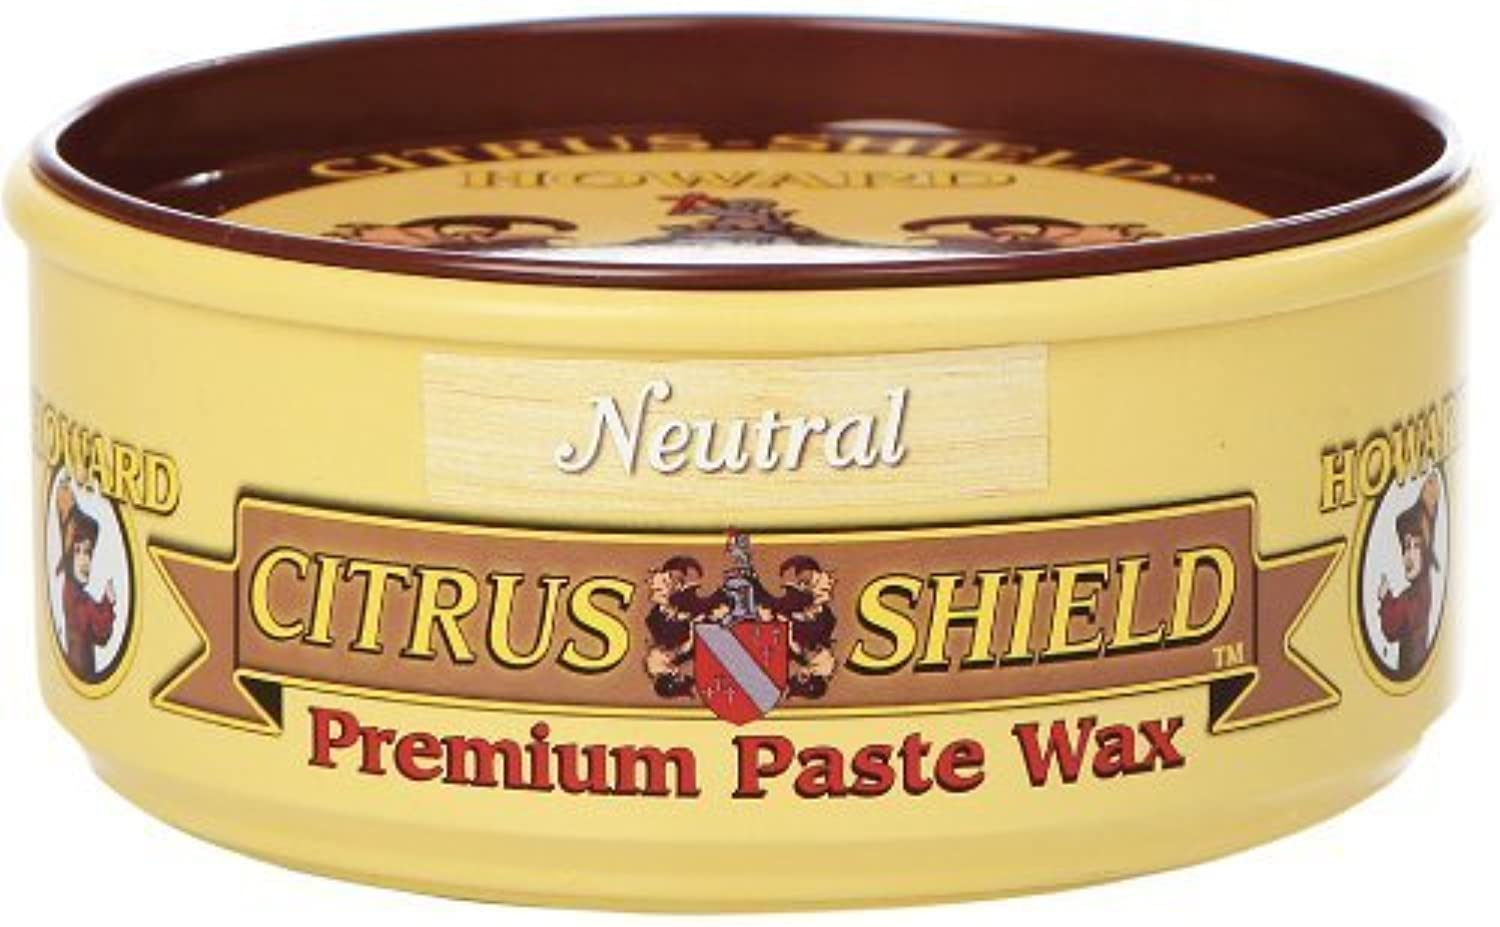 Howard CS0014 Citrus Shield Paste Wax, 11-Ounces Neutral (4-Pack)